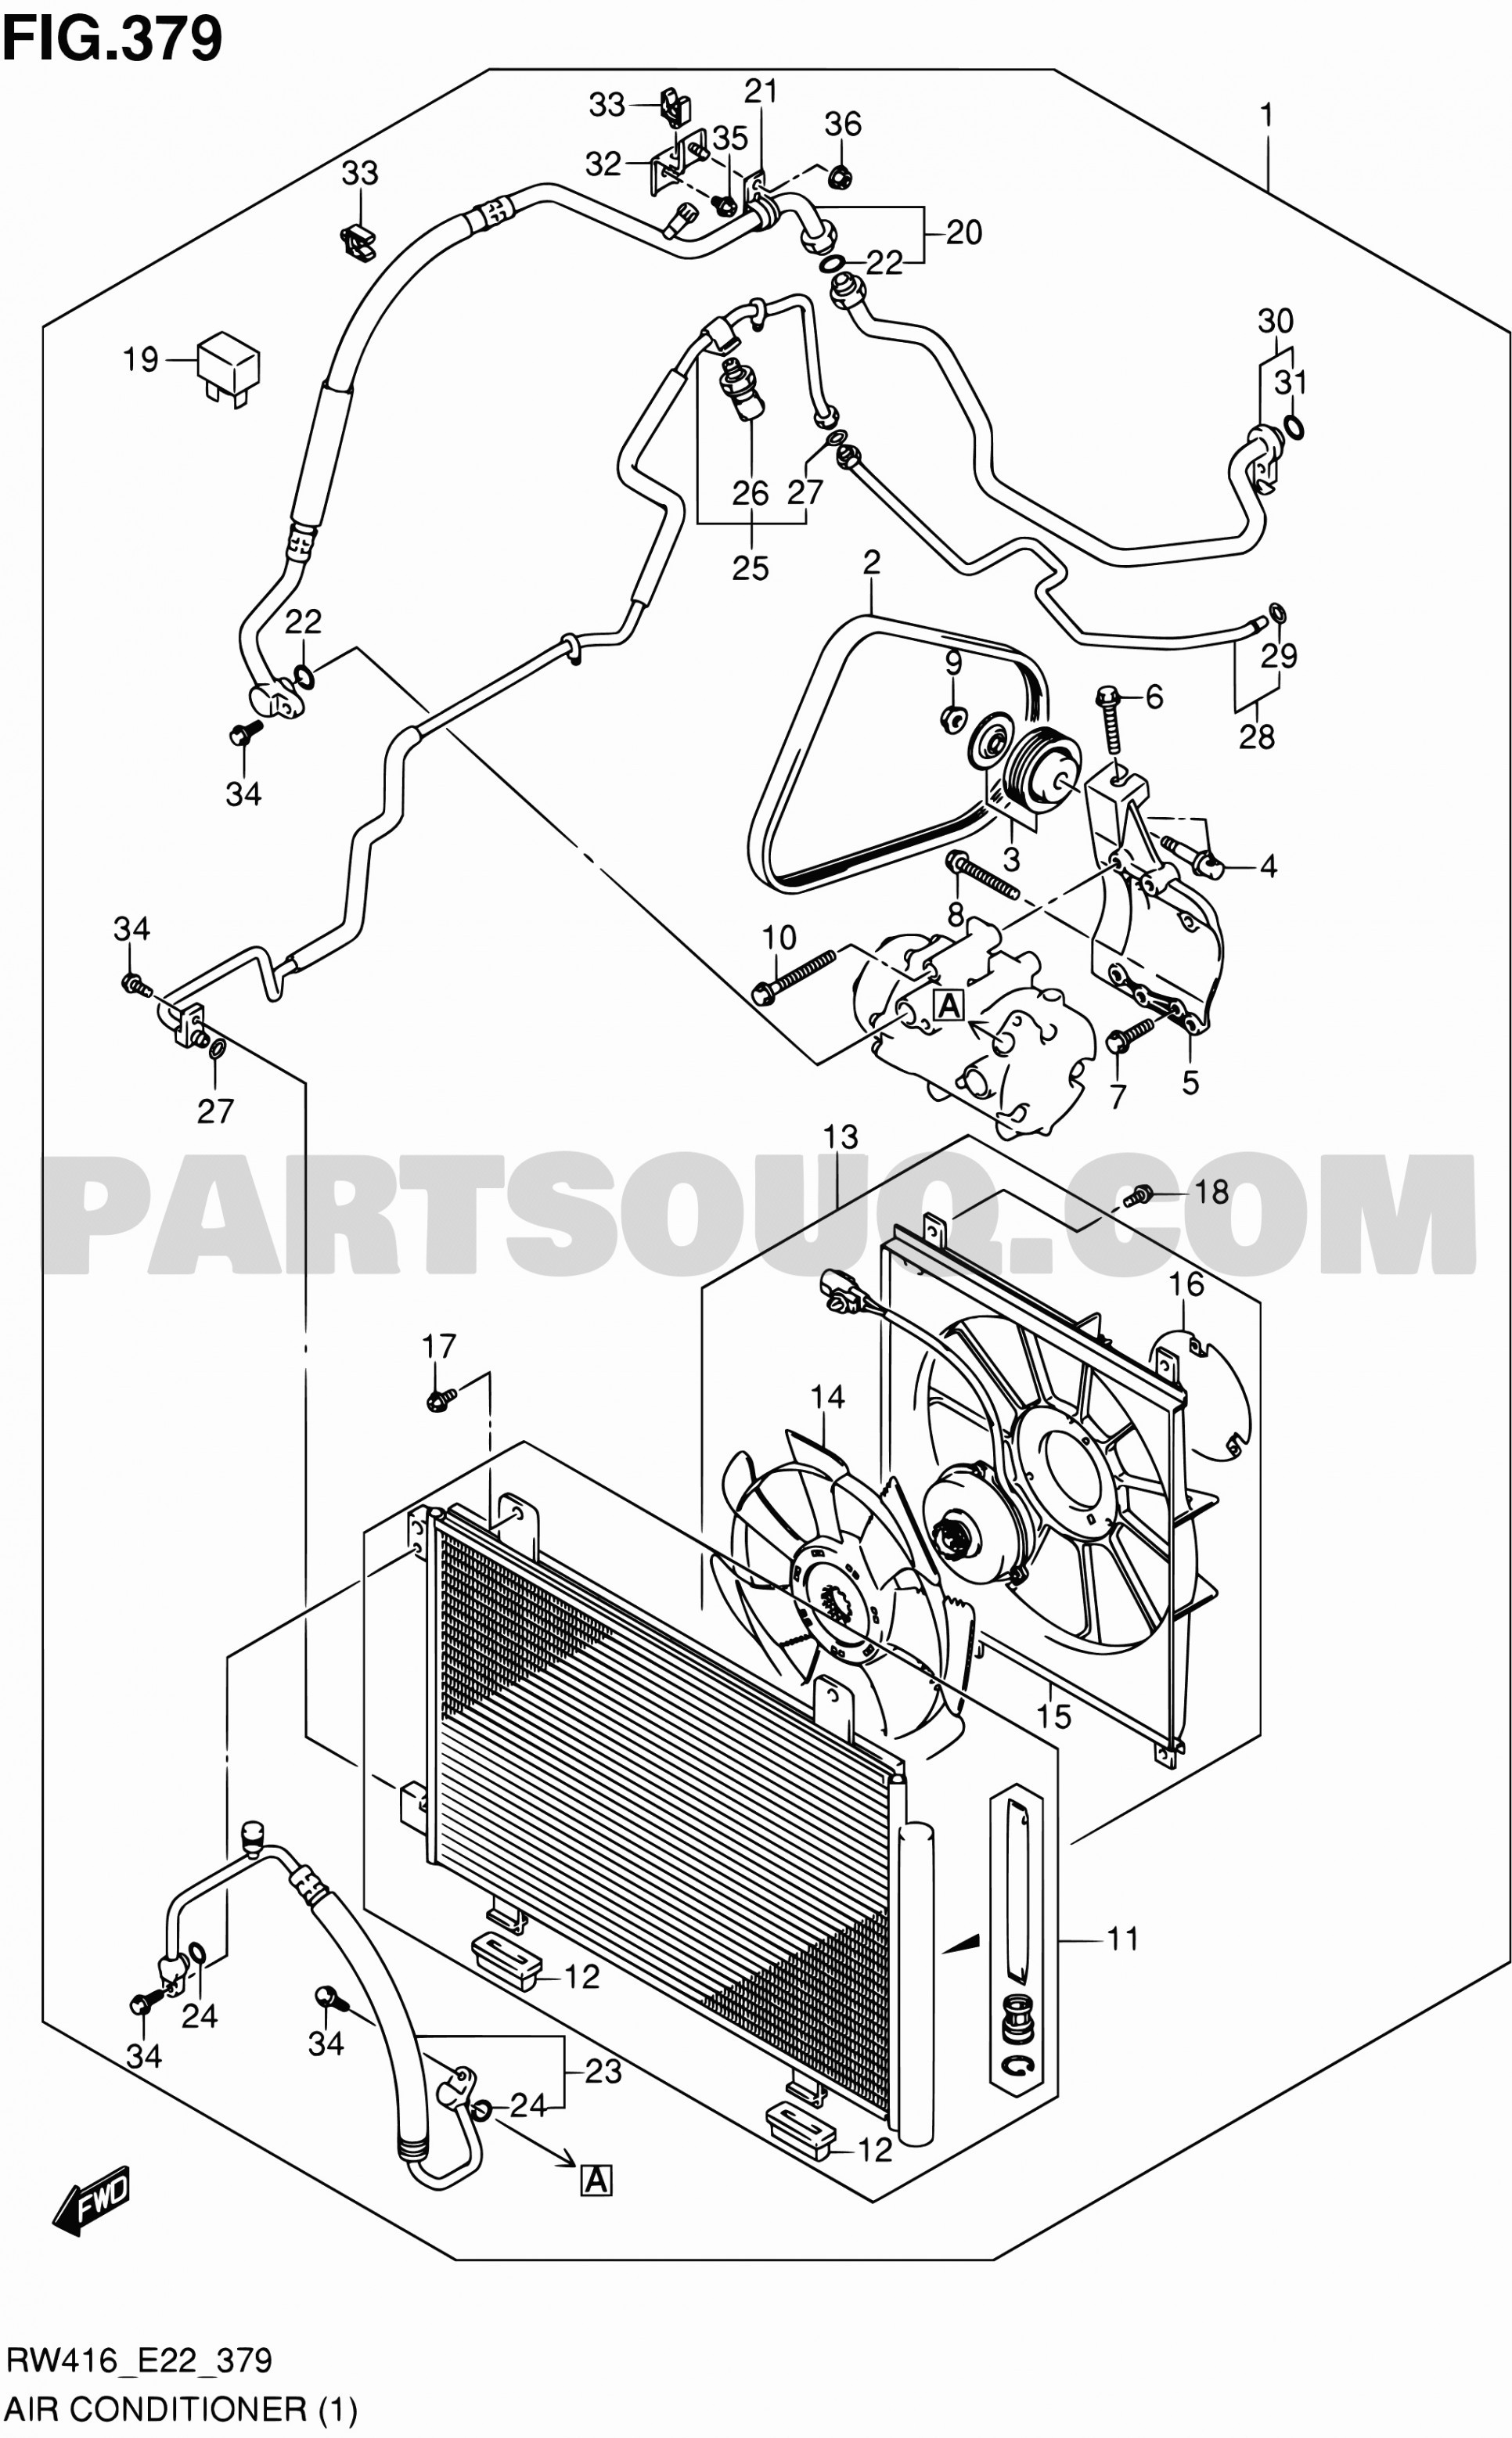 Mercedes Benz Engine Diagram Mercedes Benz Parts Diagram – Diagram Car Best Car Parts and Of Mercedes Benz Engine Diagram Wiring Diagram Auto Alarm Best Best Mercedes Benz Wiring Diagrams